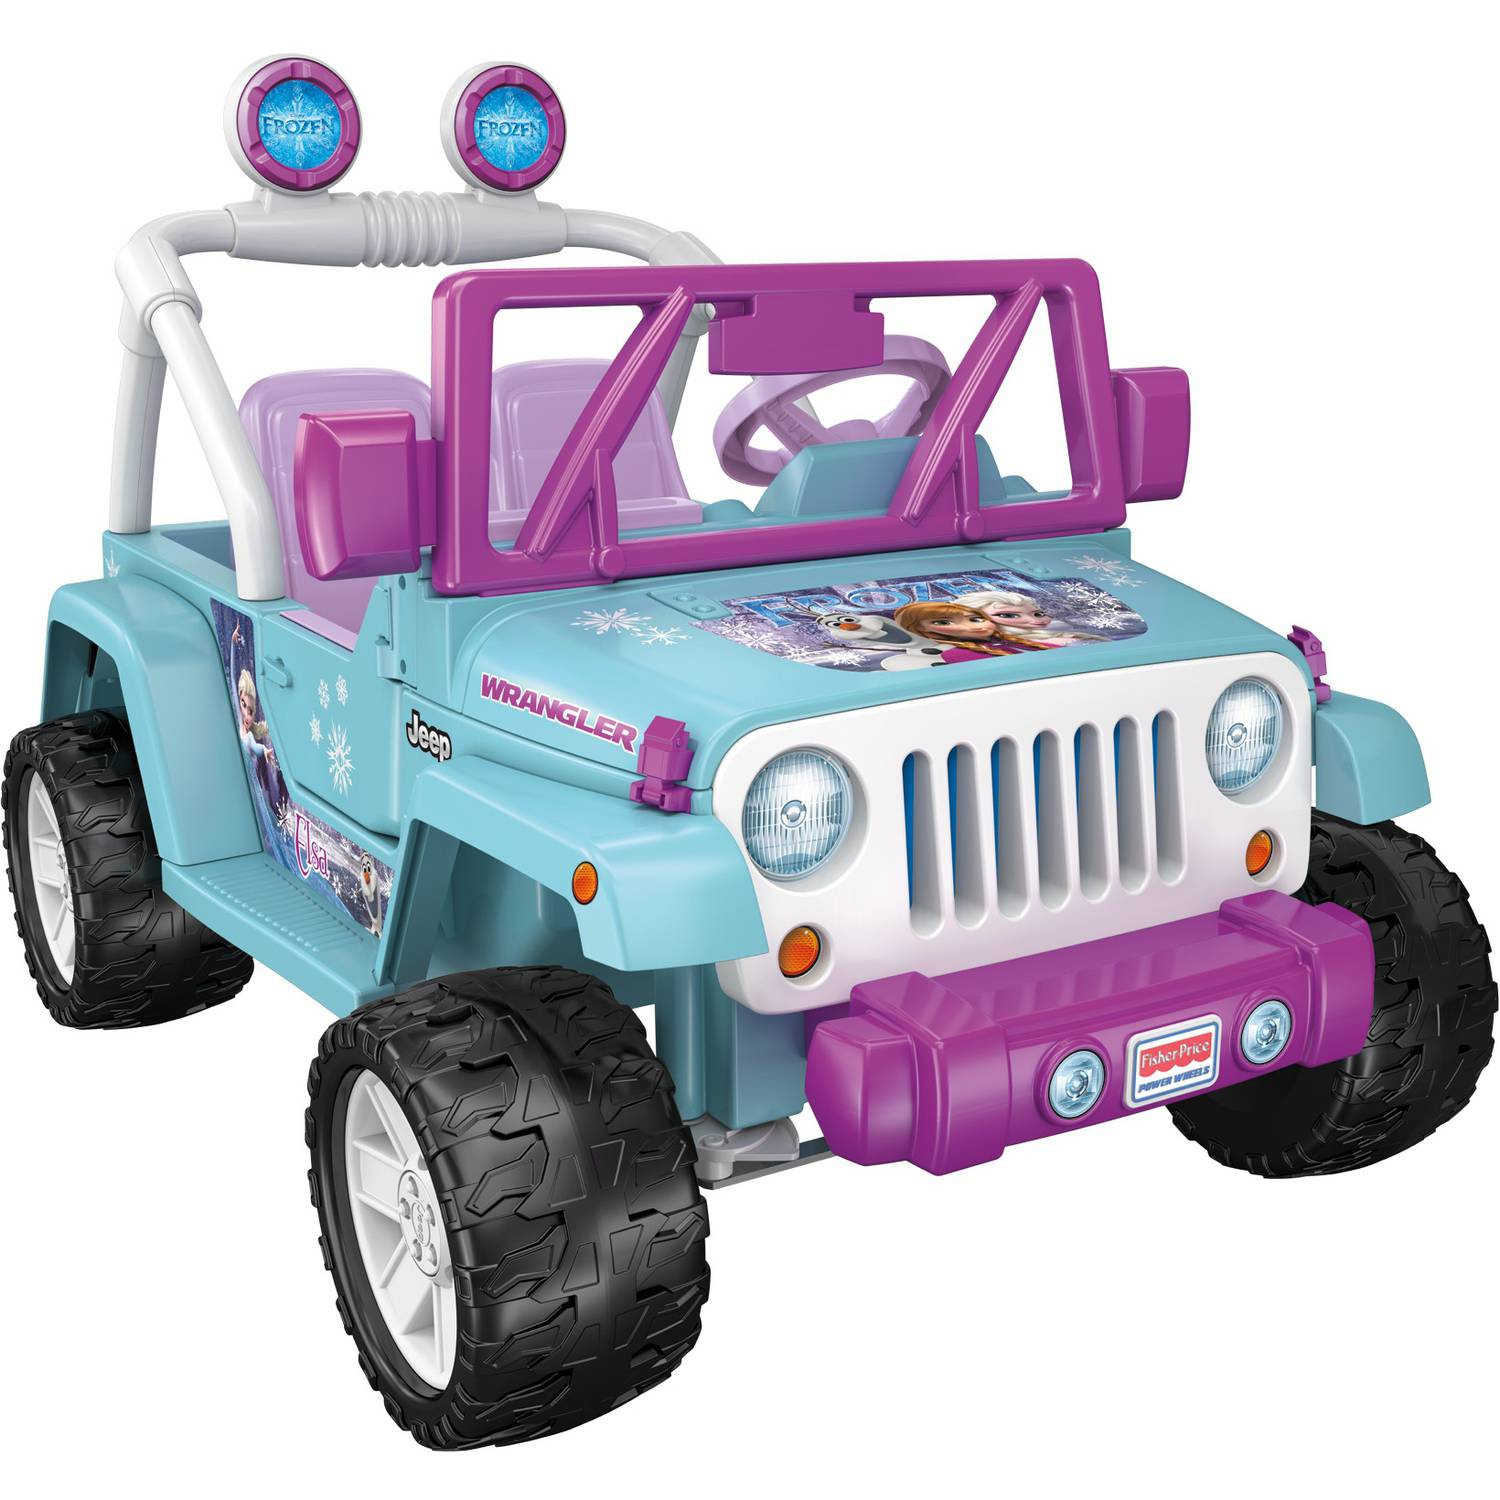 Barbie Jeep Battery Replacement